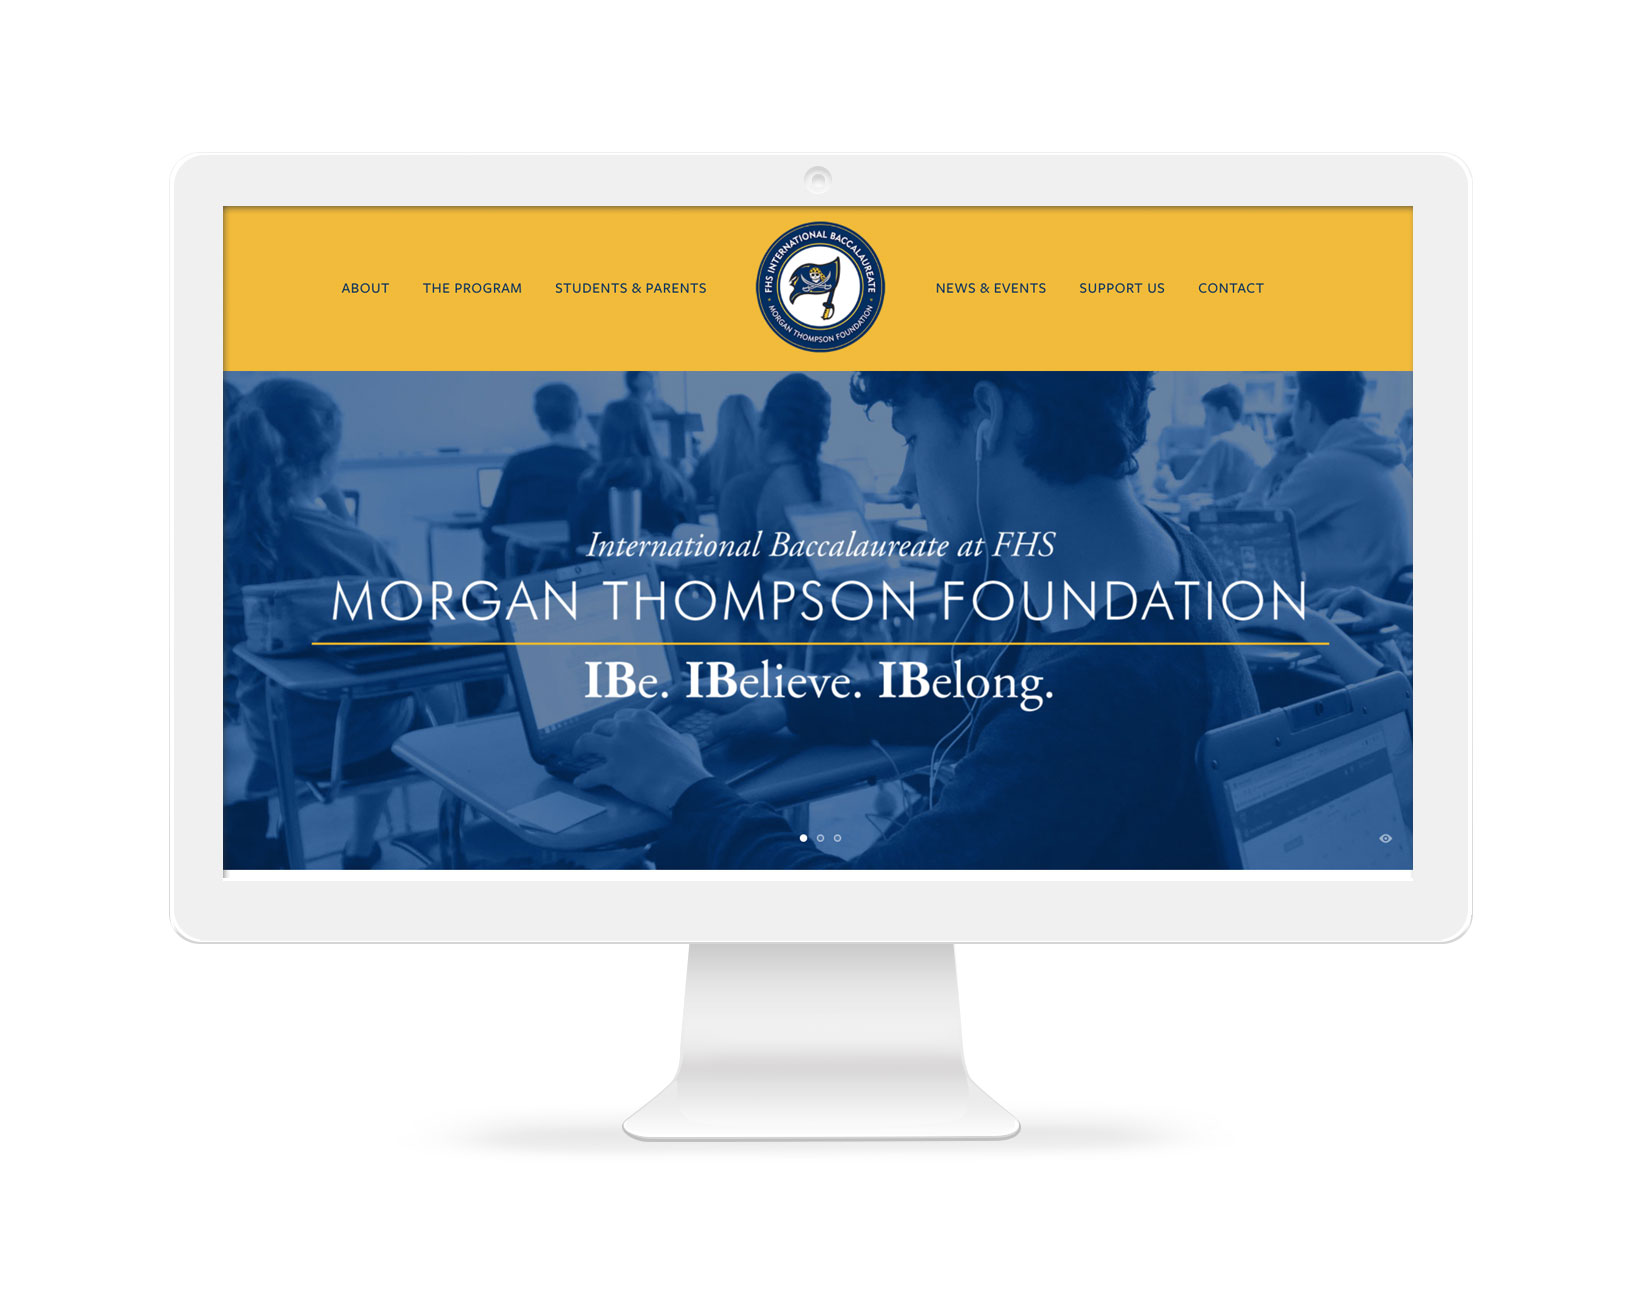 Morgan Thompson Foundation